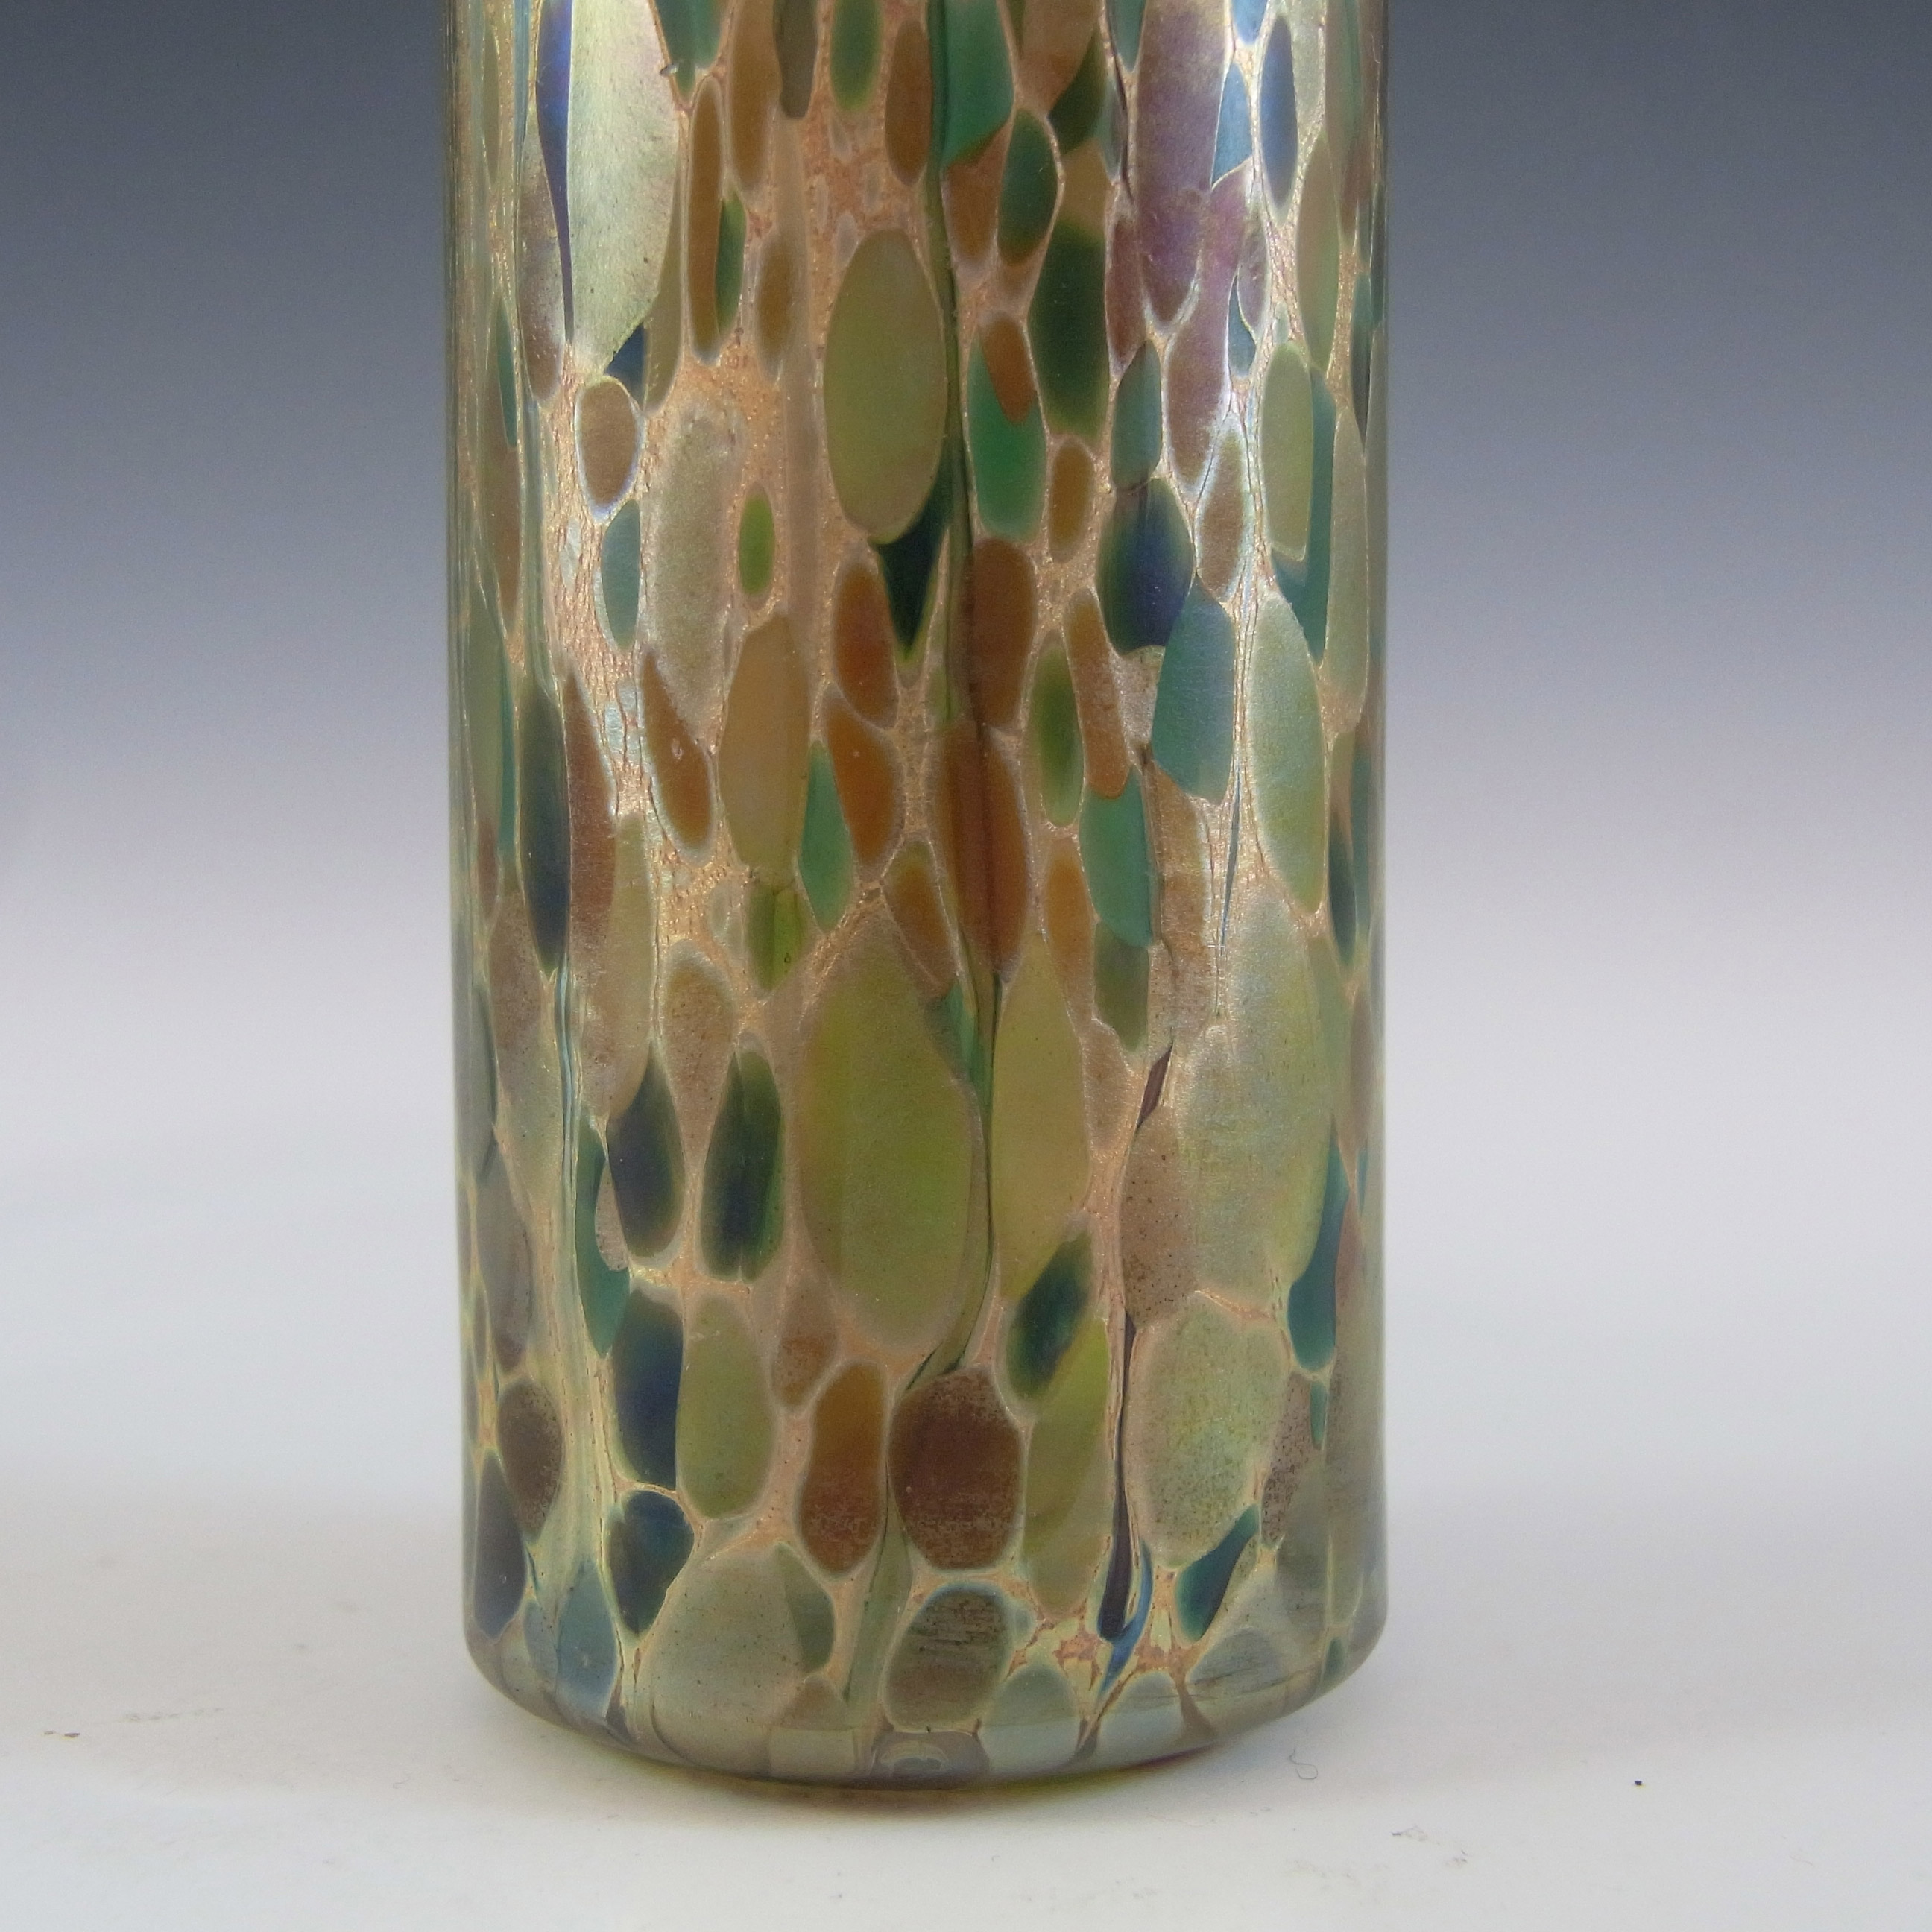 Isle of Wight Studio 'Summer Fruits' Goldberry Glass Vase - Click Image to Close